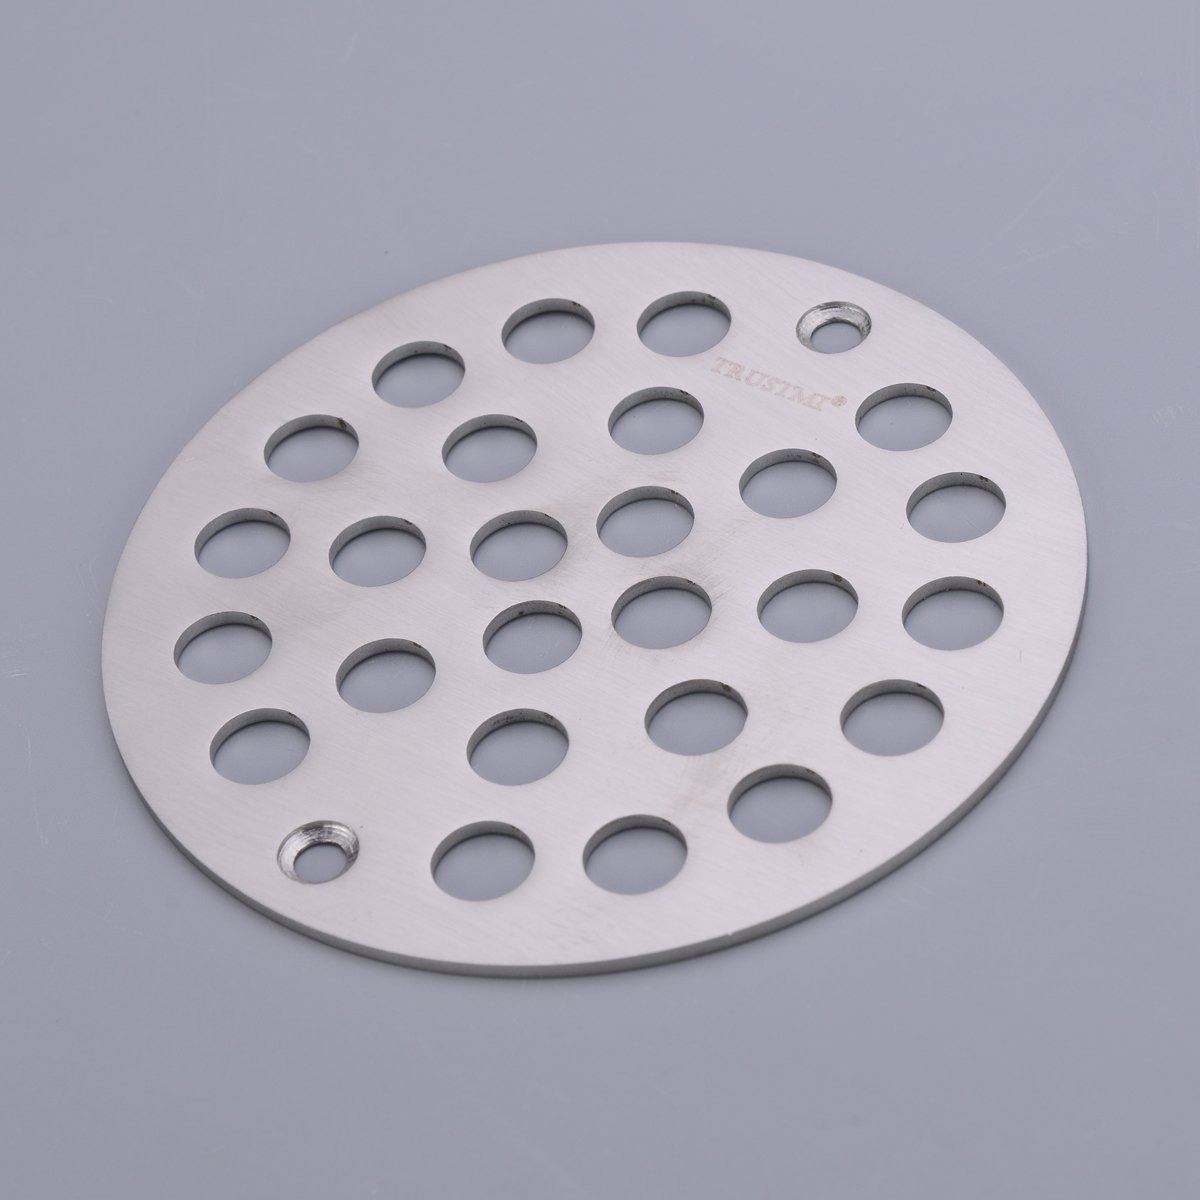 TRUSTMI 4 Inch Screw-in Shower Drain Cover Replacement Floor Strainer,Polished Chrome